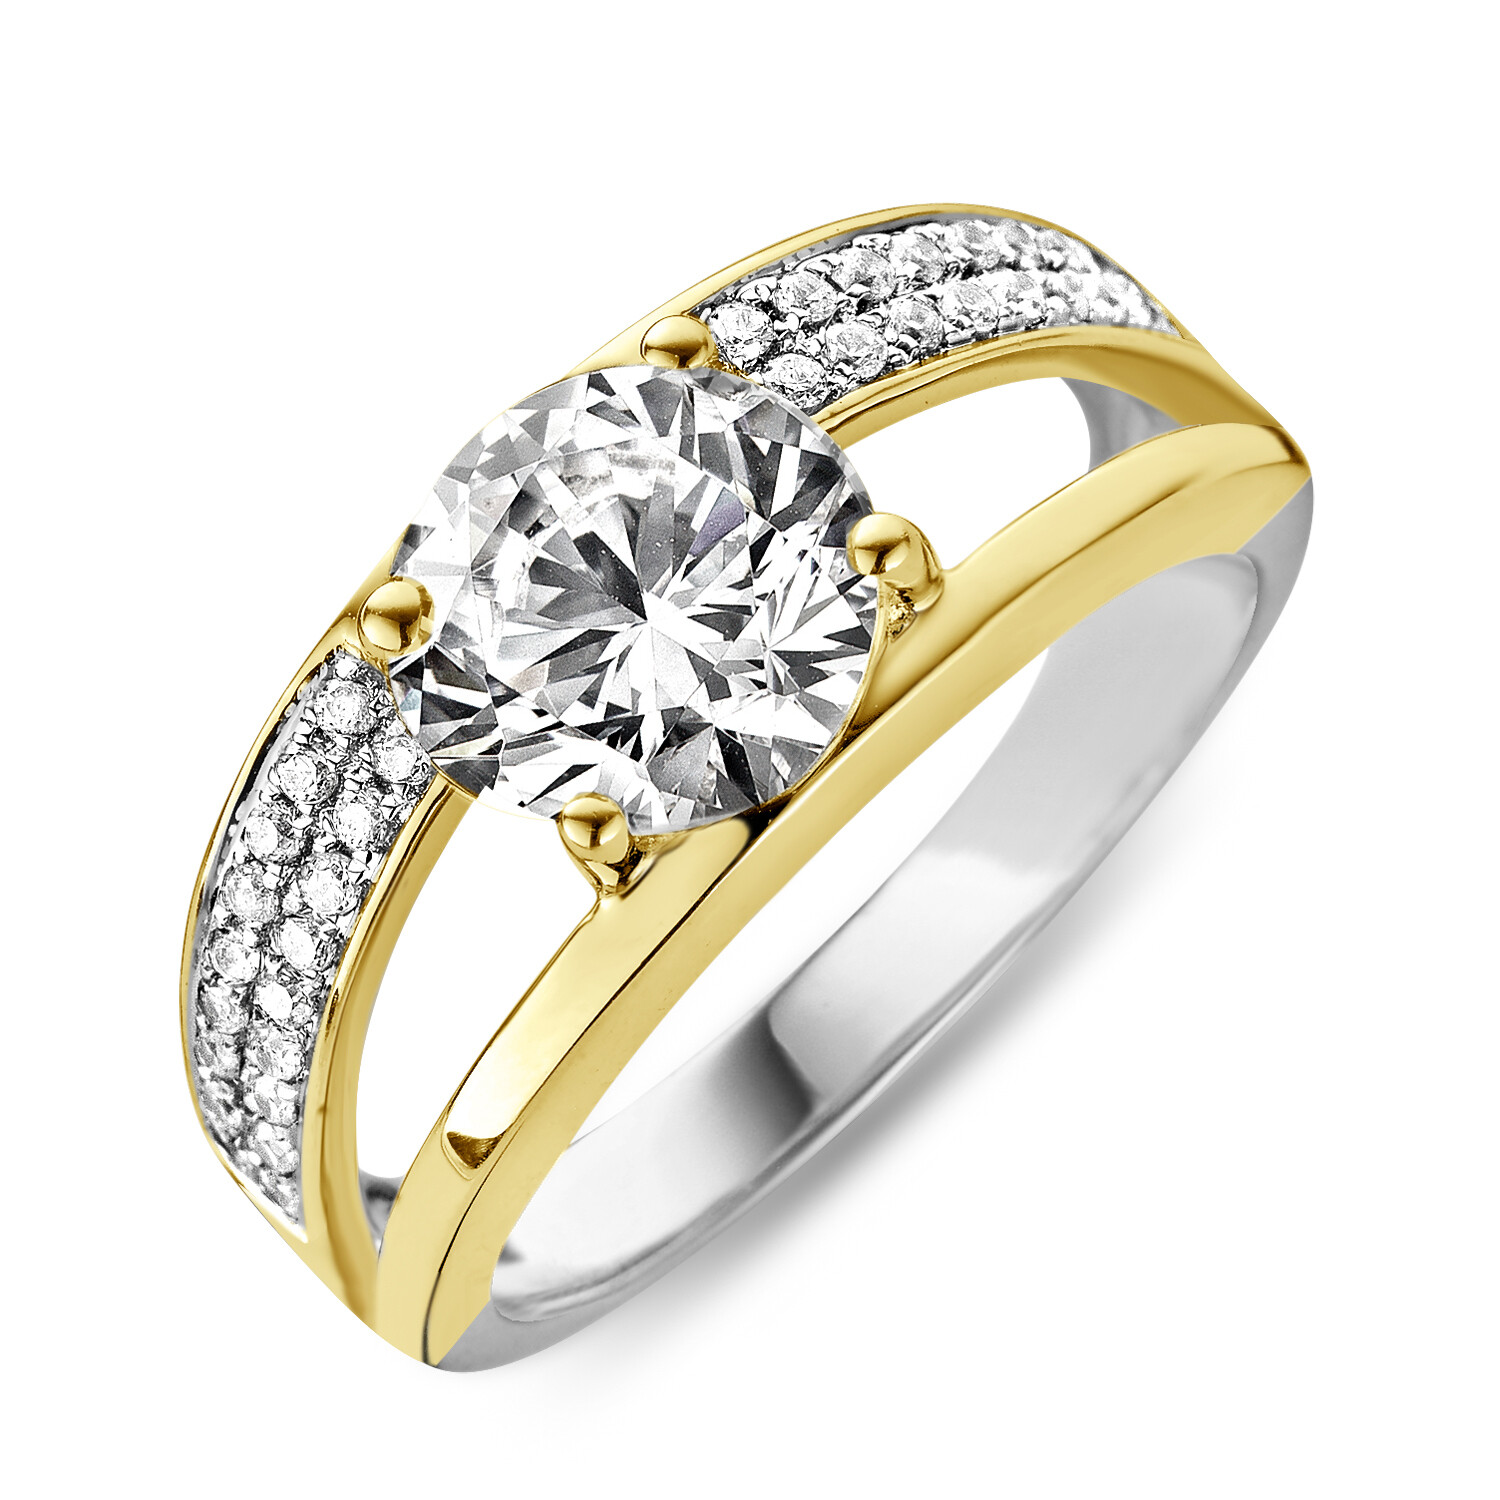 R6102G-54 Gold plated set with white cz